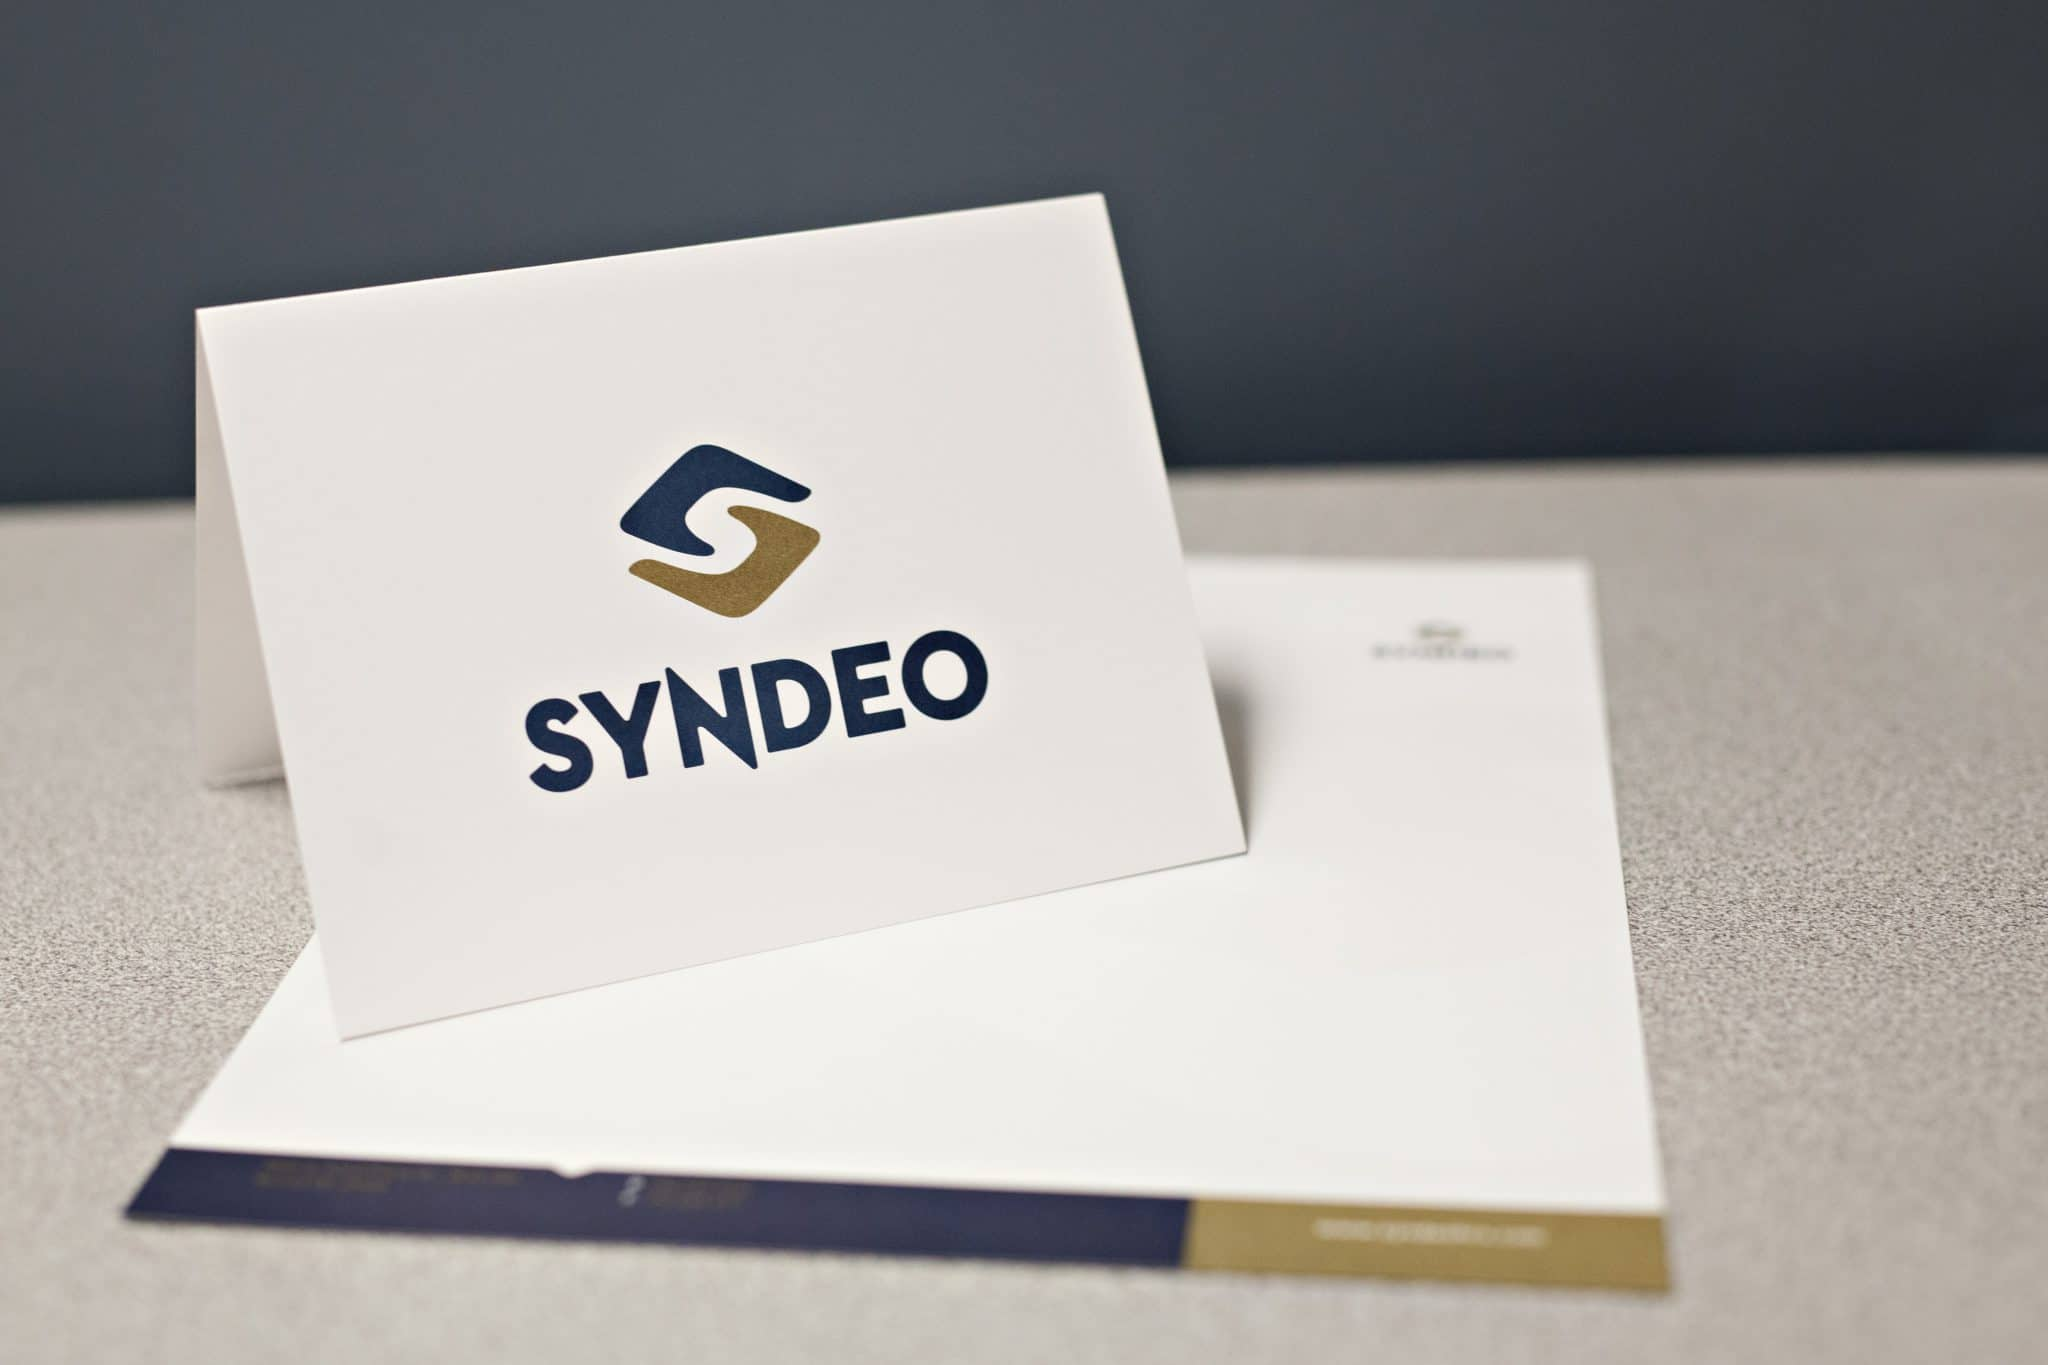 Syndeo Business Card